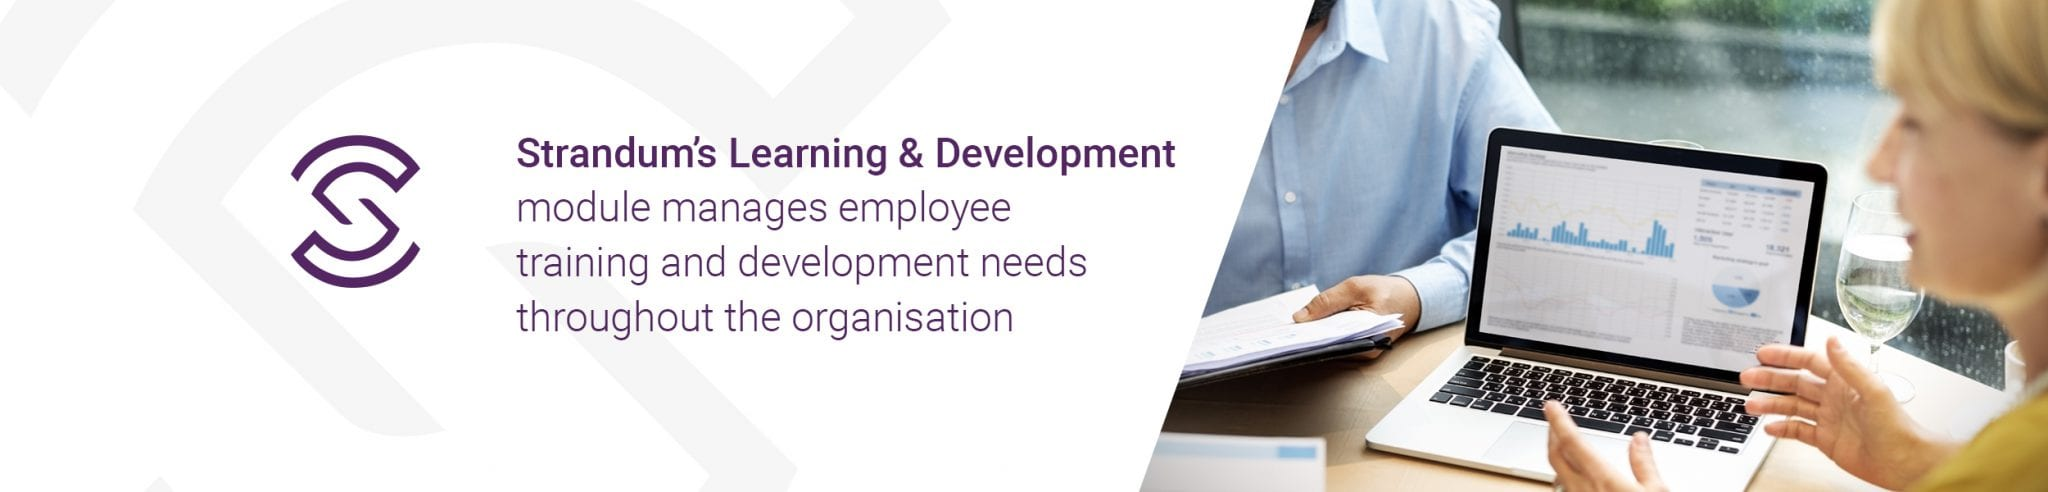 Strandum's Learning & Development